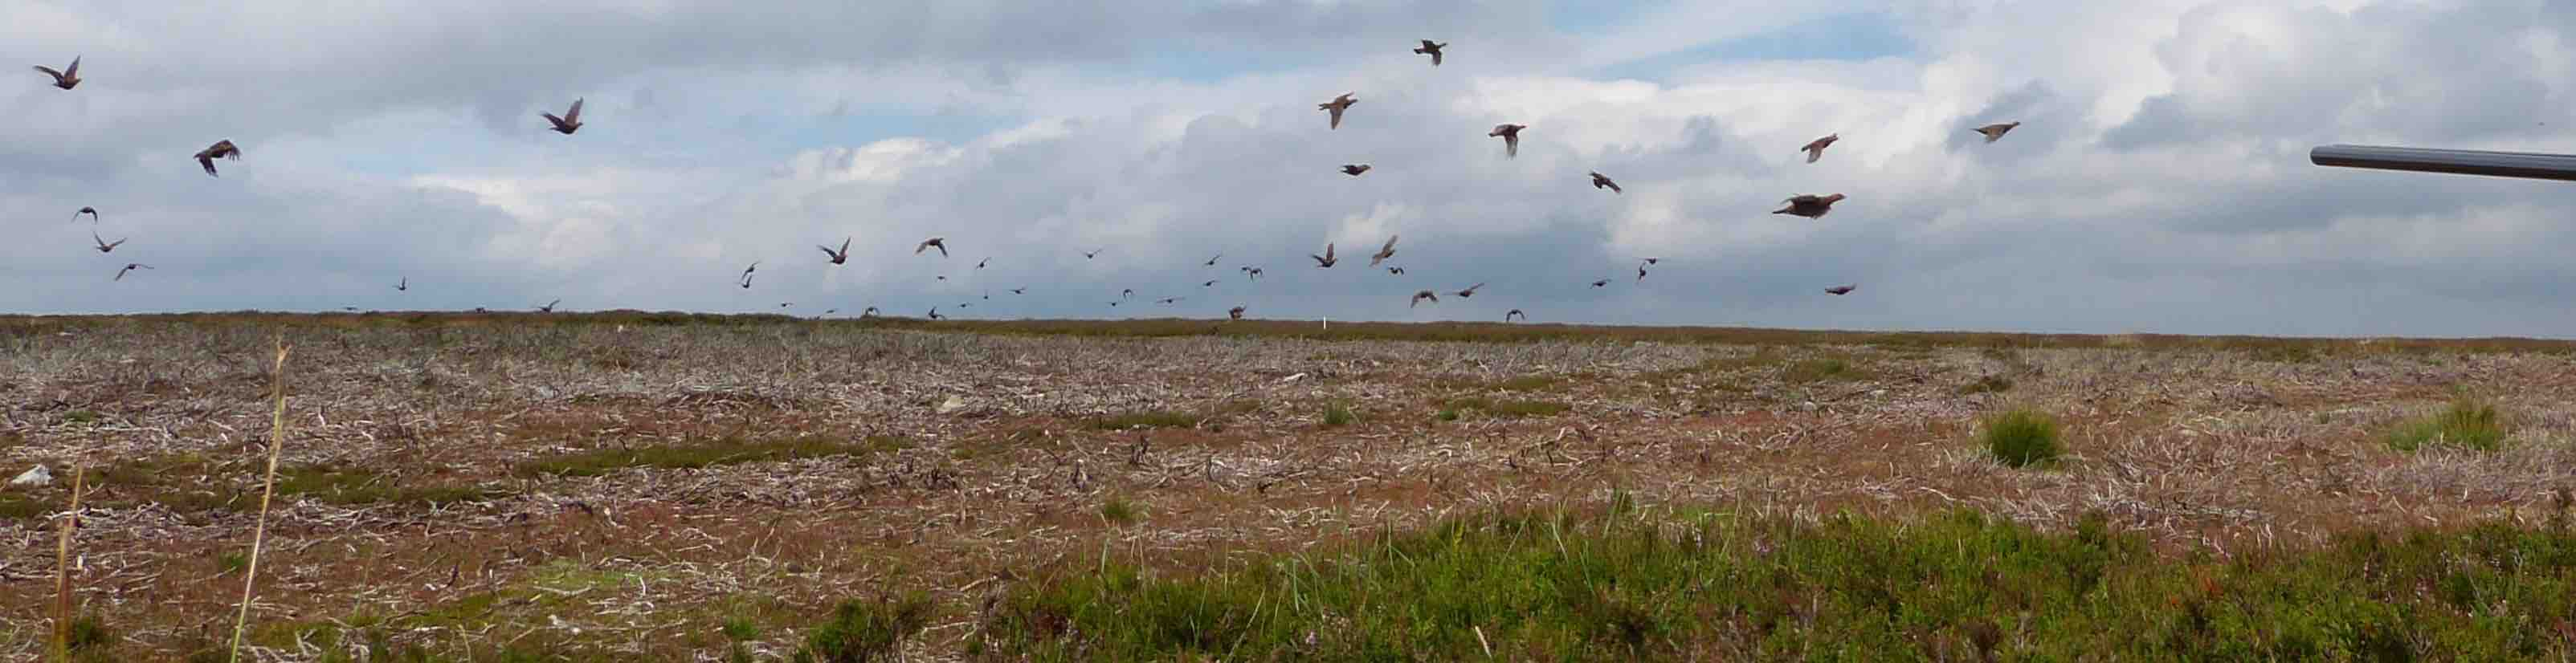 Driven-Red-Grouse-Shooting-Scotland-Engl